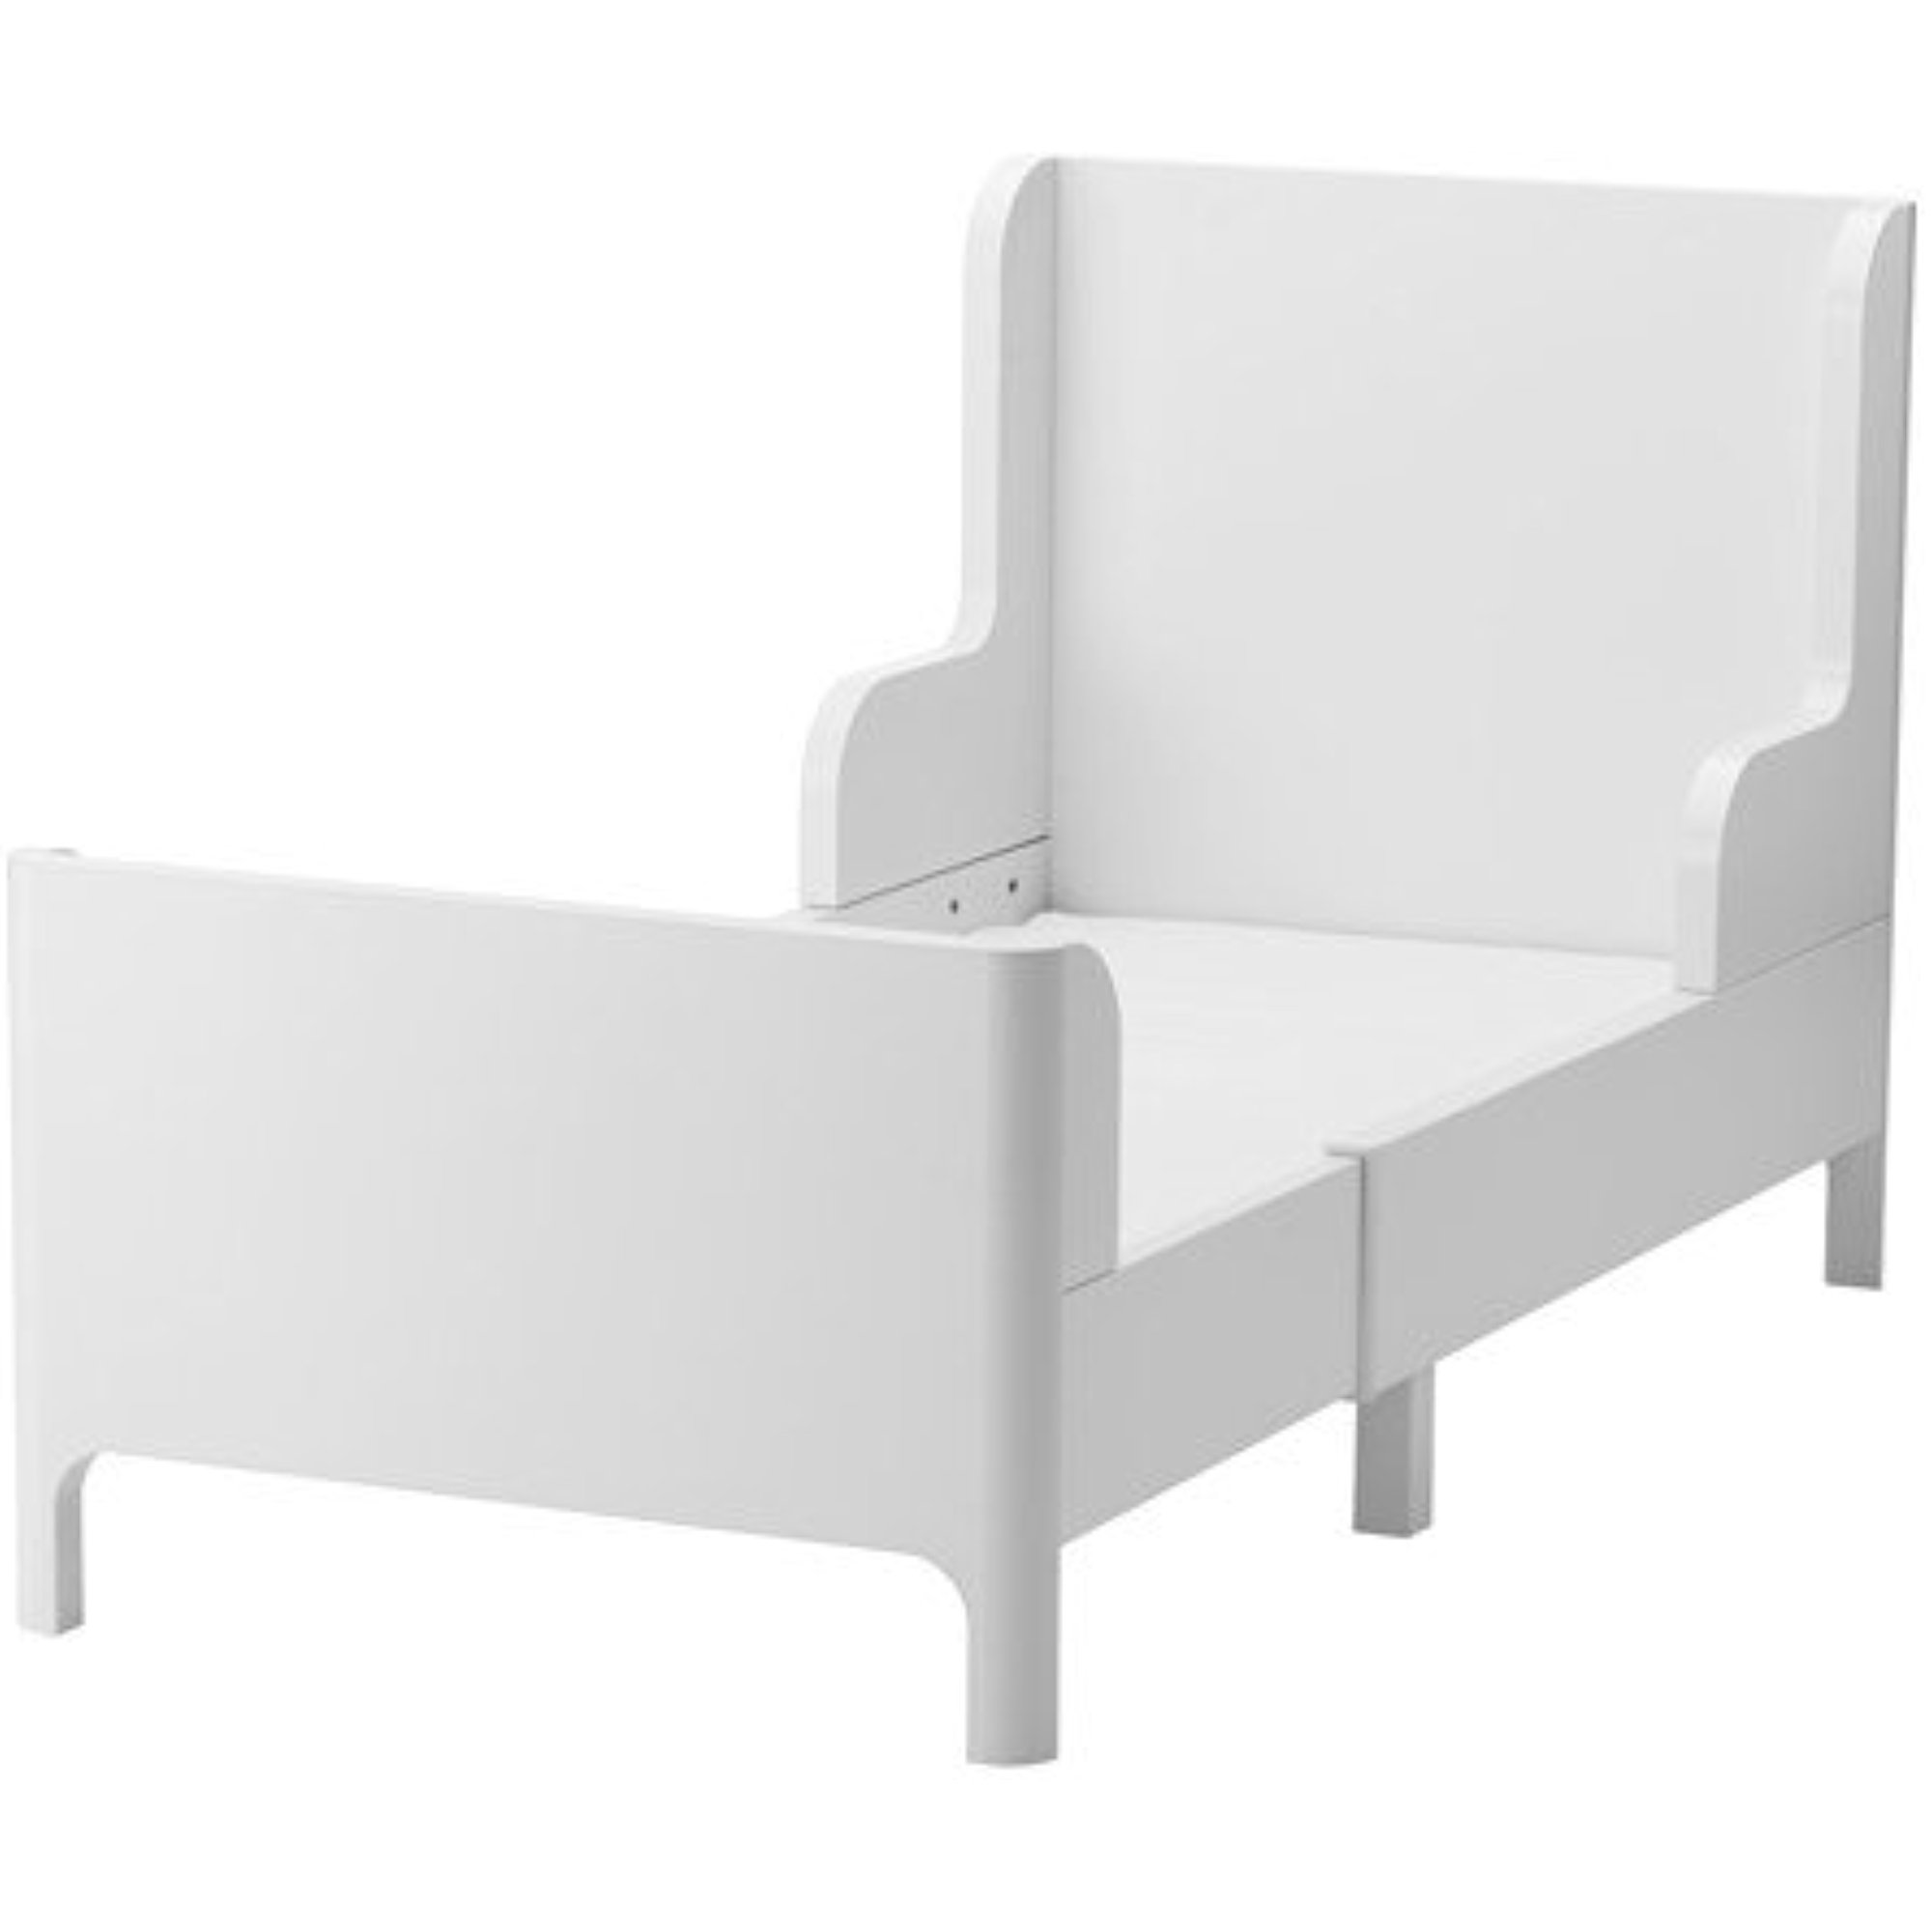 """Ikea Extendable bed, white , 37 3/4x74 3/4 """" , 38214.21723 ..."""